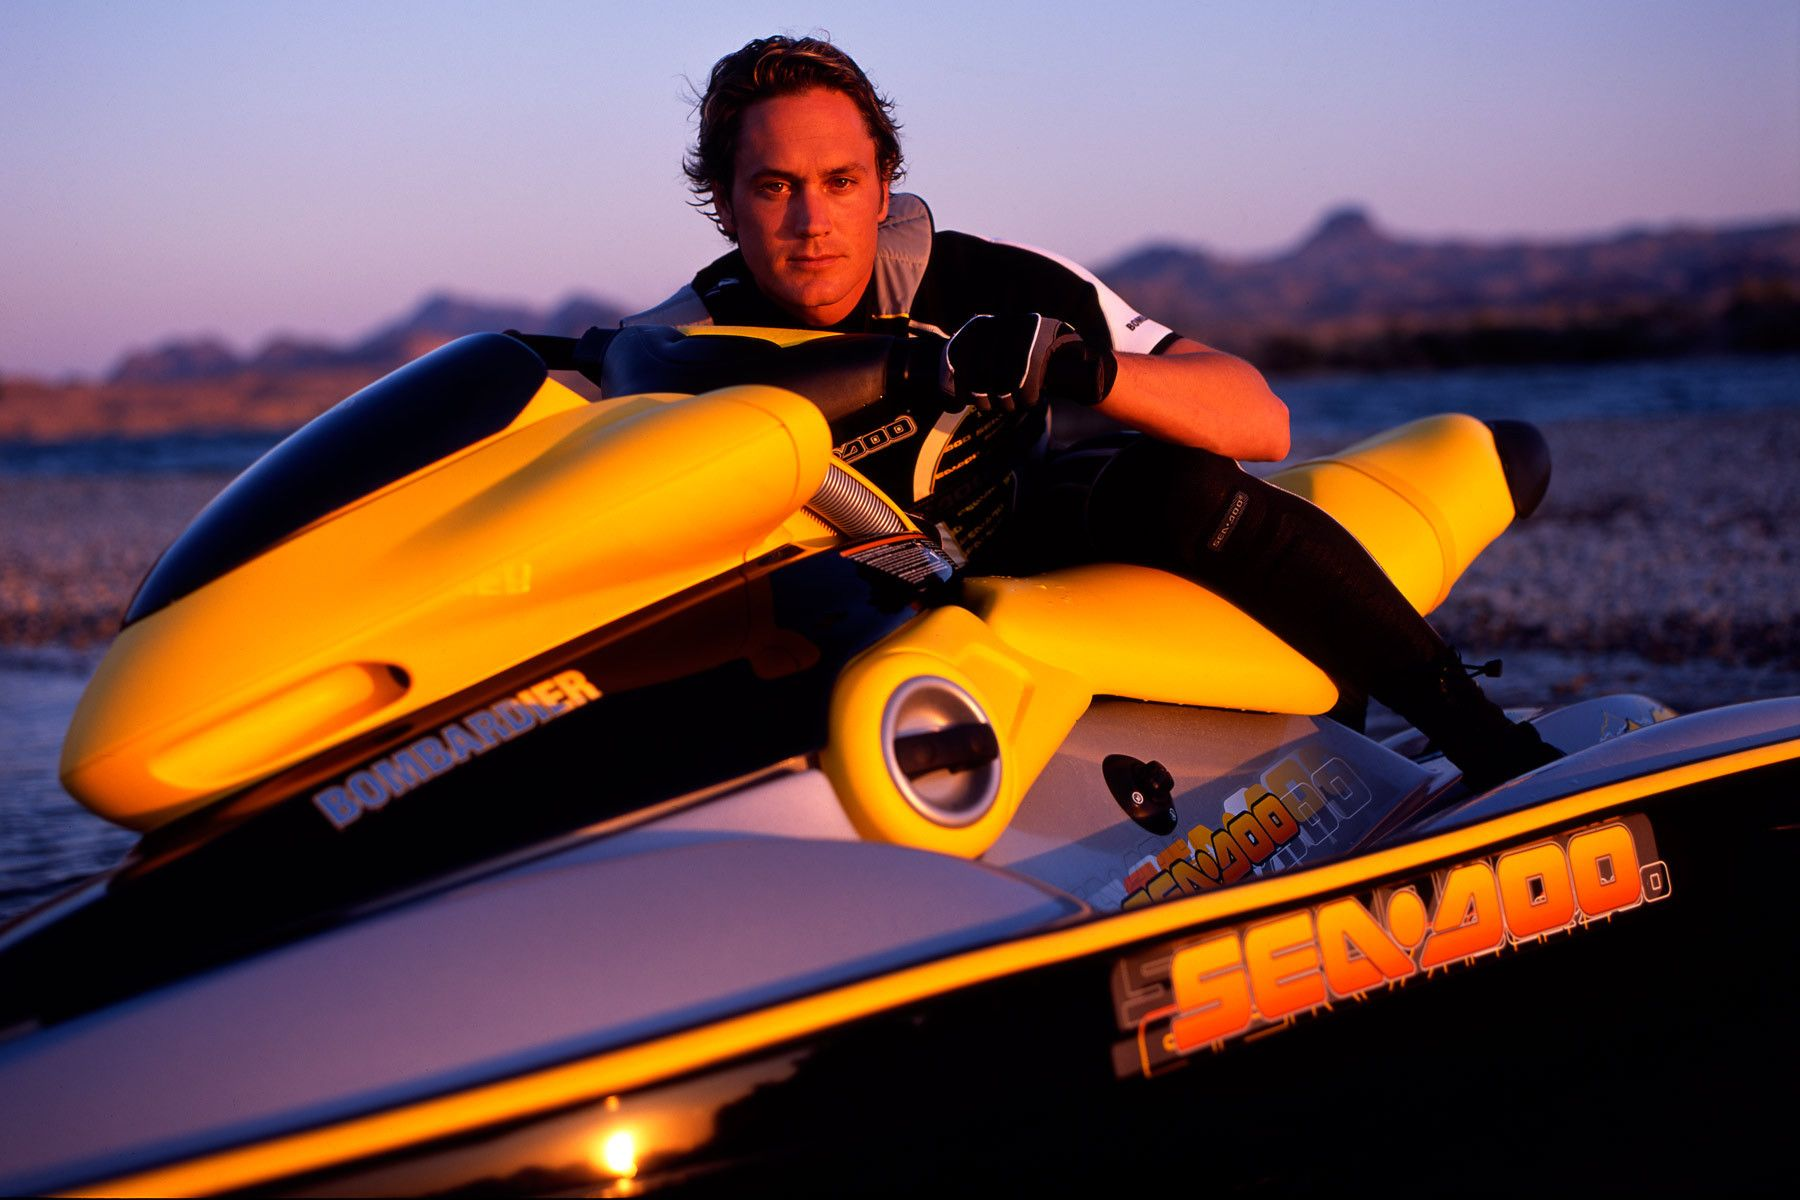 Client: SeaDoo/ Bombardier